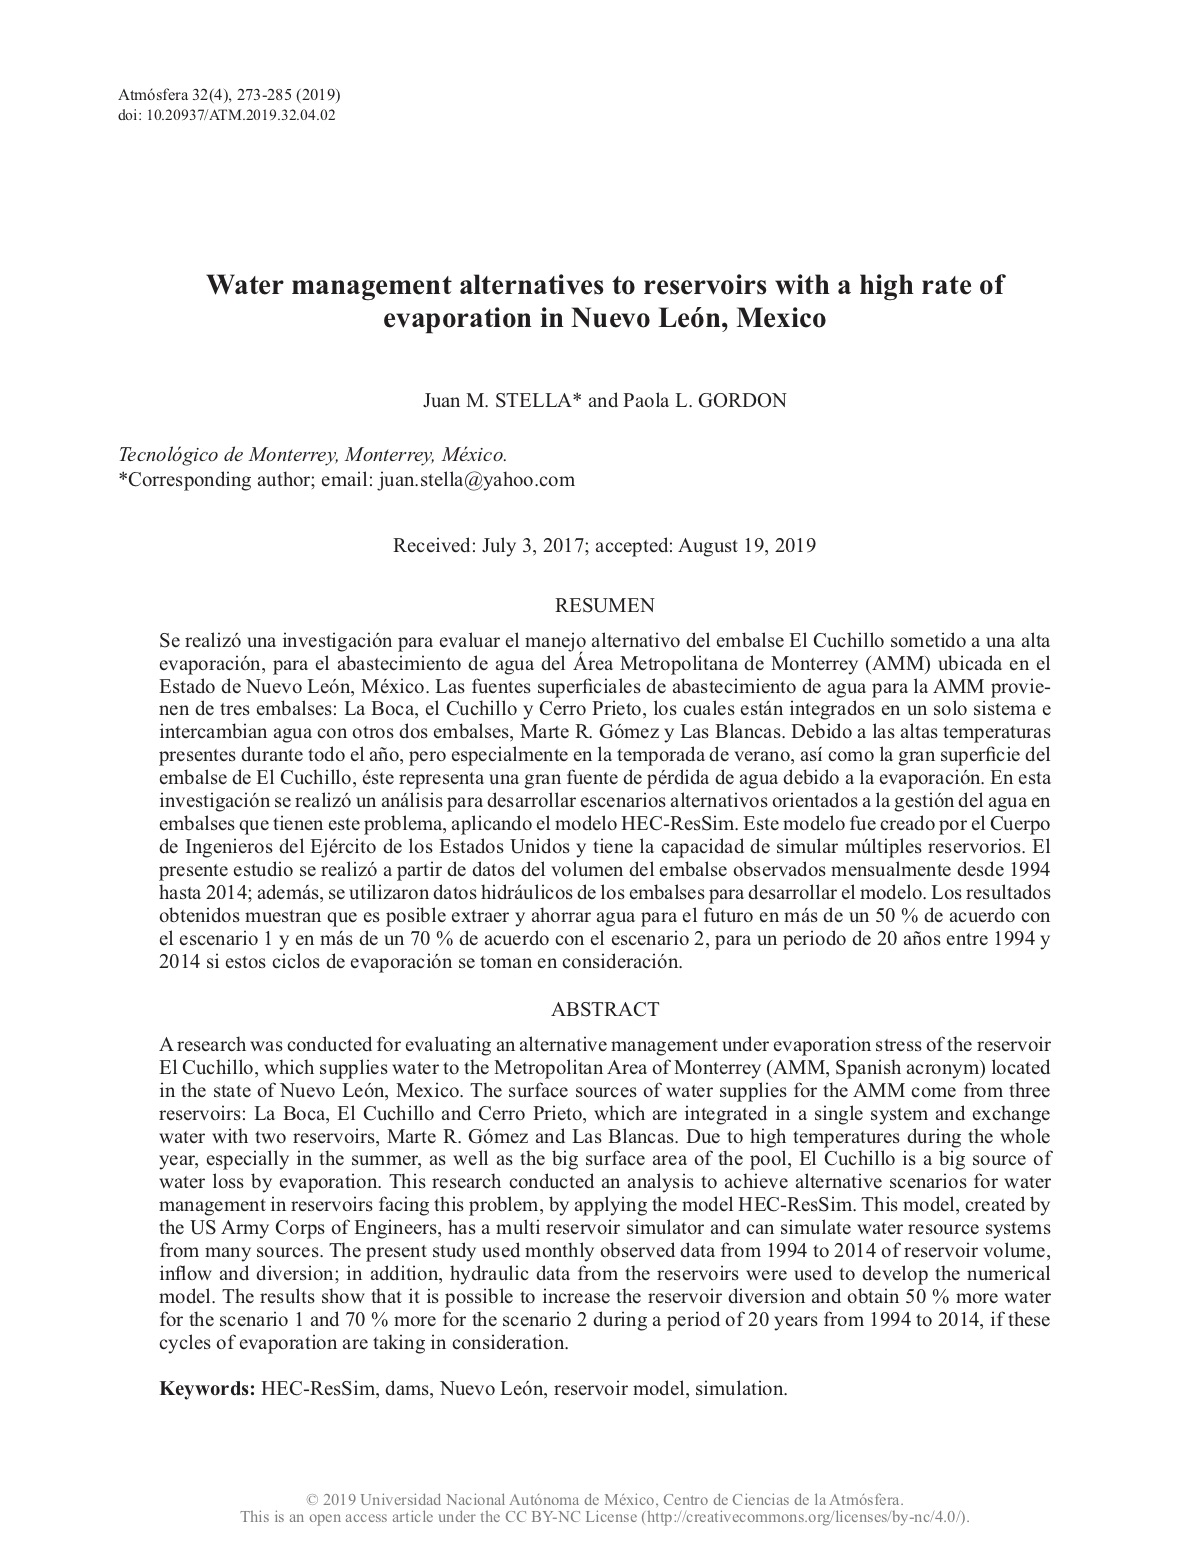 Water management alternatives to reservoirs with a high rate of evaporation in Nuevo León, Mexico